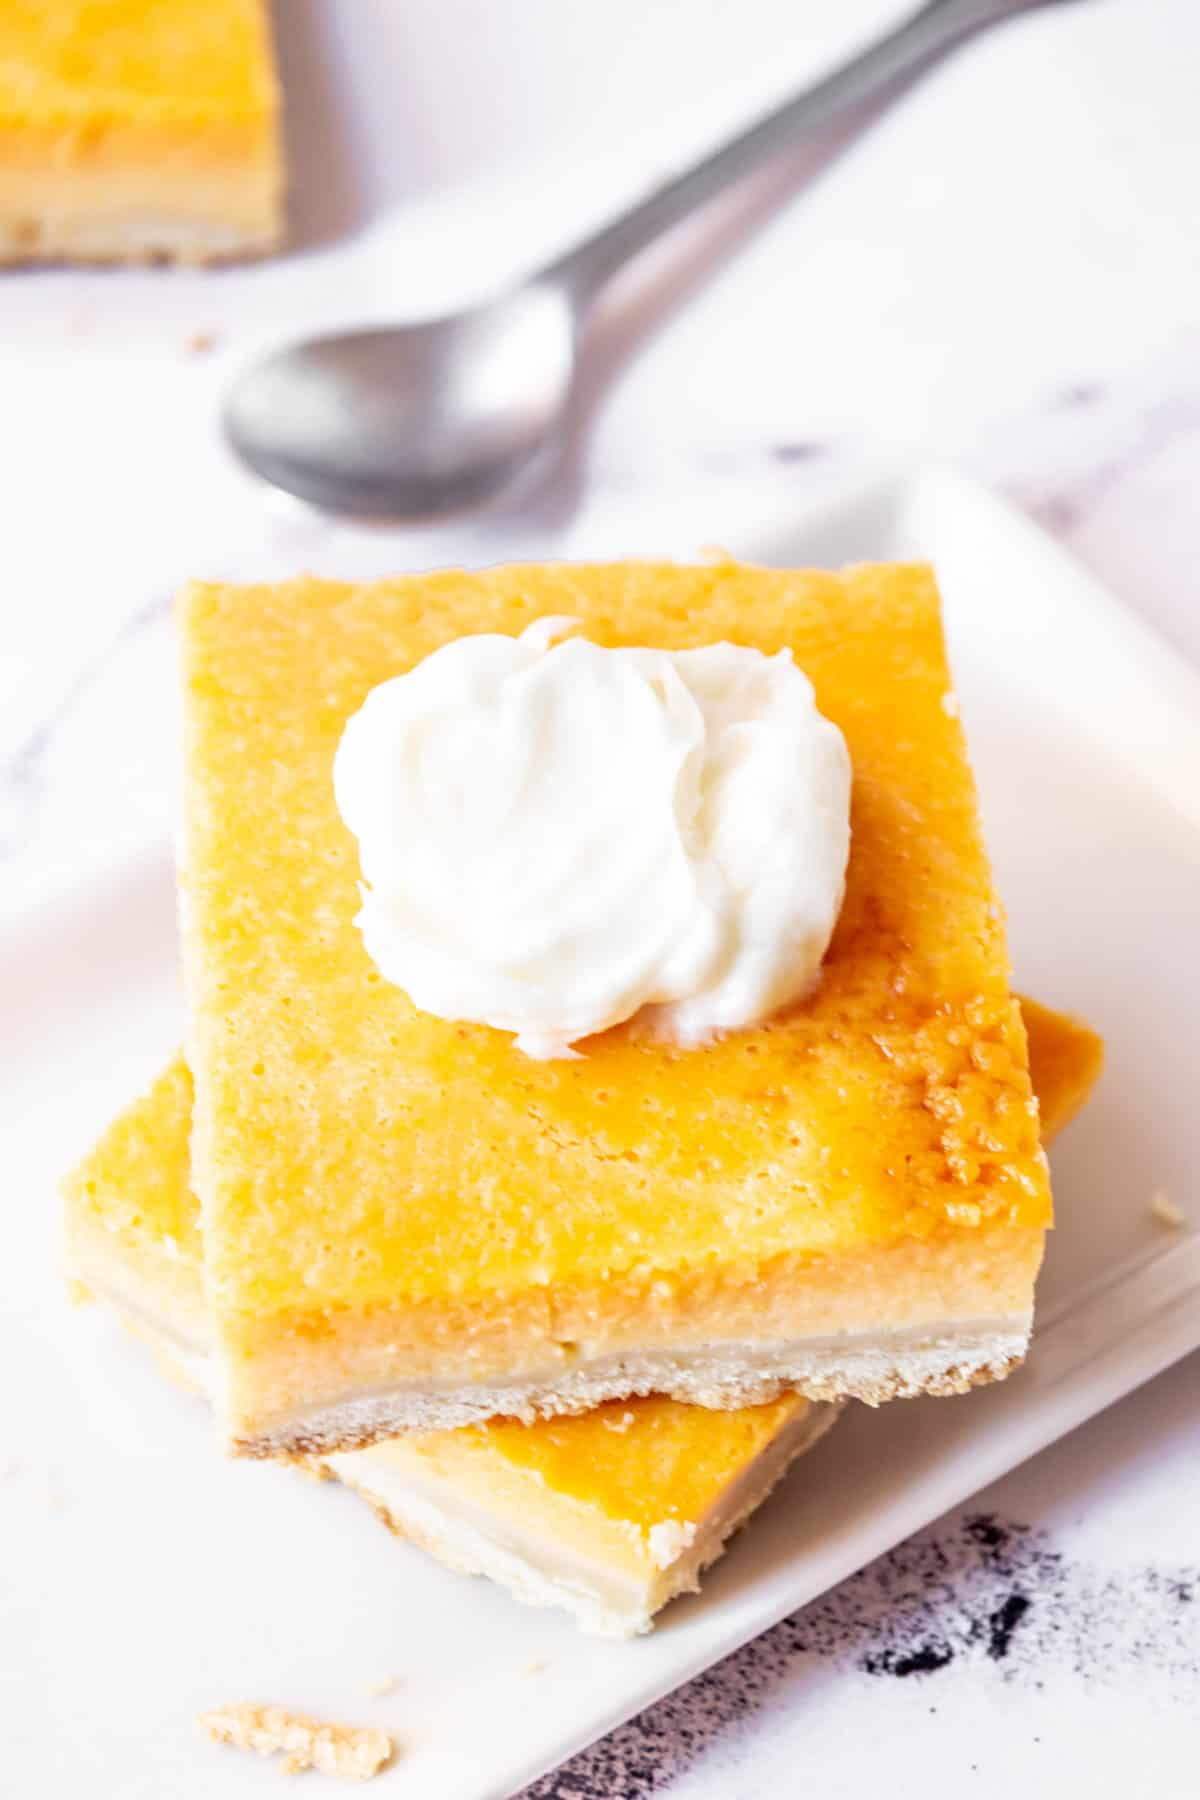 Pumpkin pie bars on a plate with a spoon.